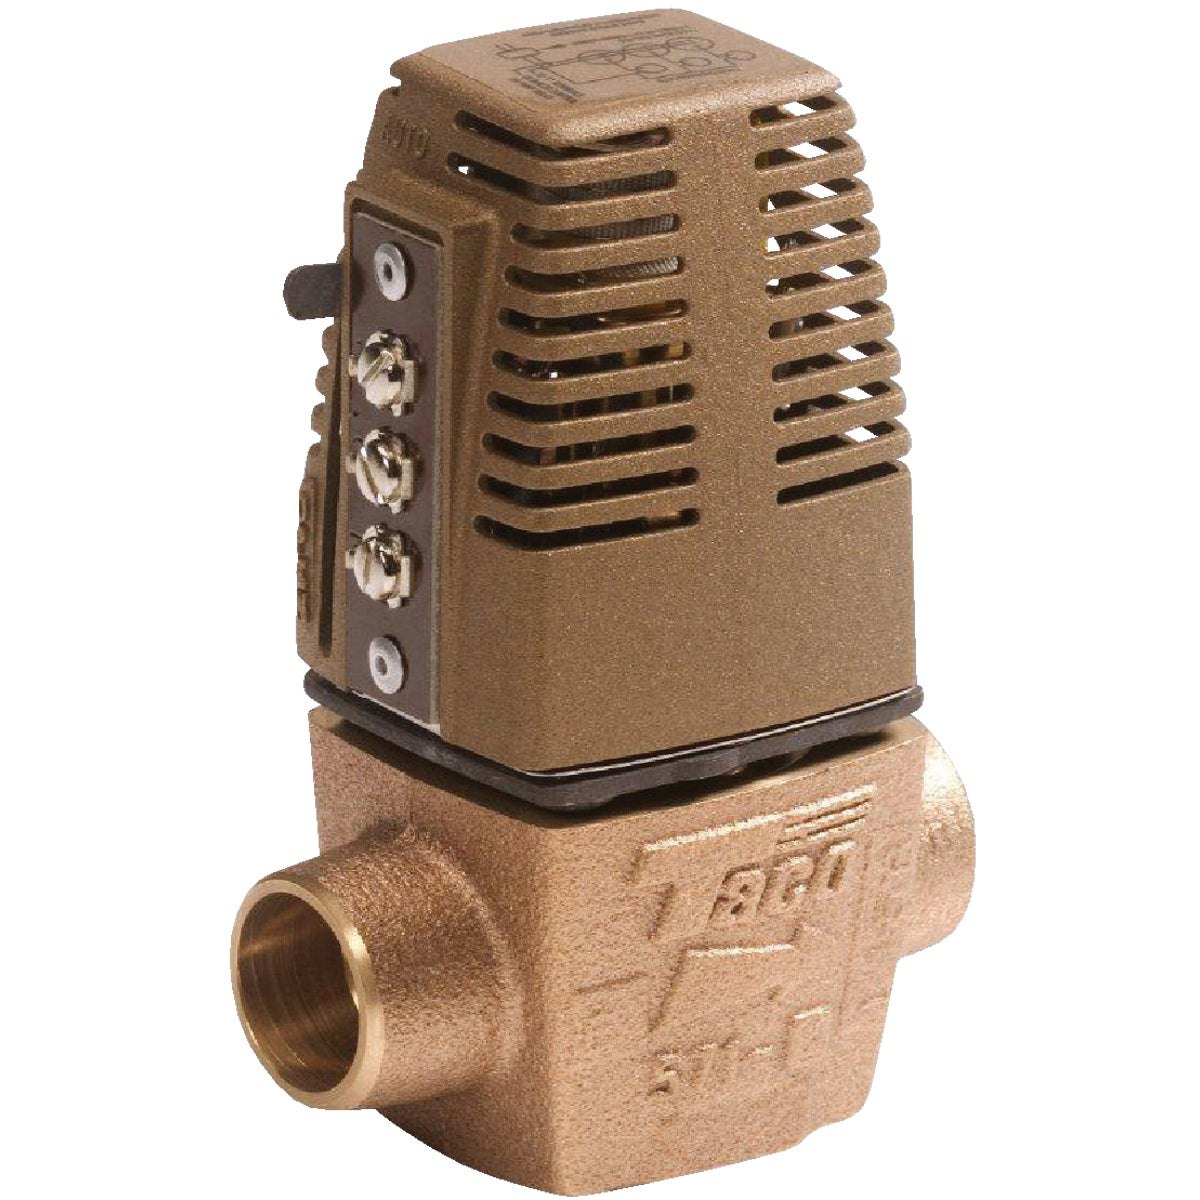 HEAT MOTOR ZONE VALVE - DIB401140 by Rheem